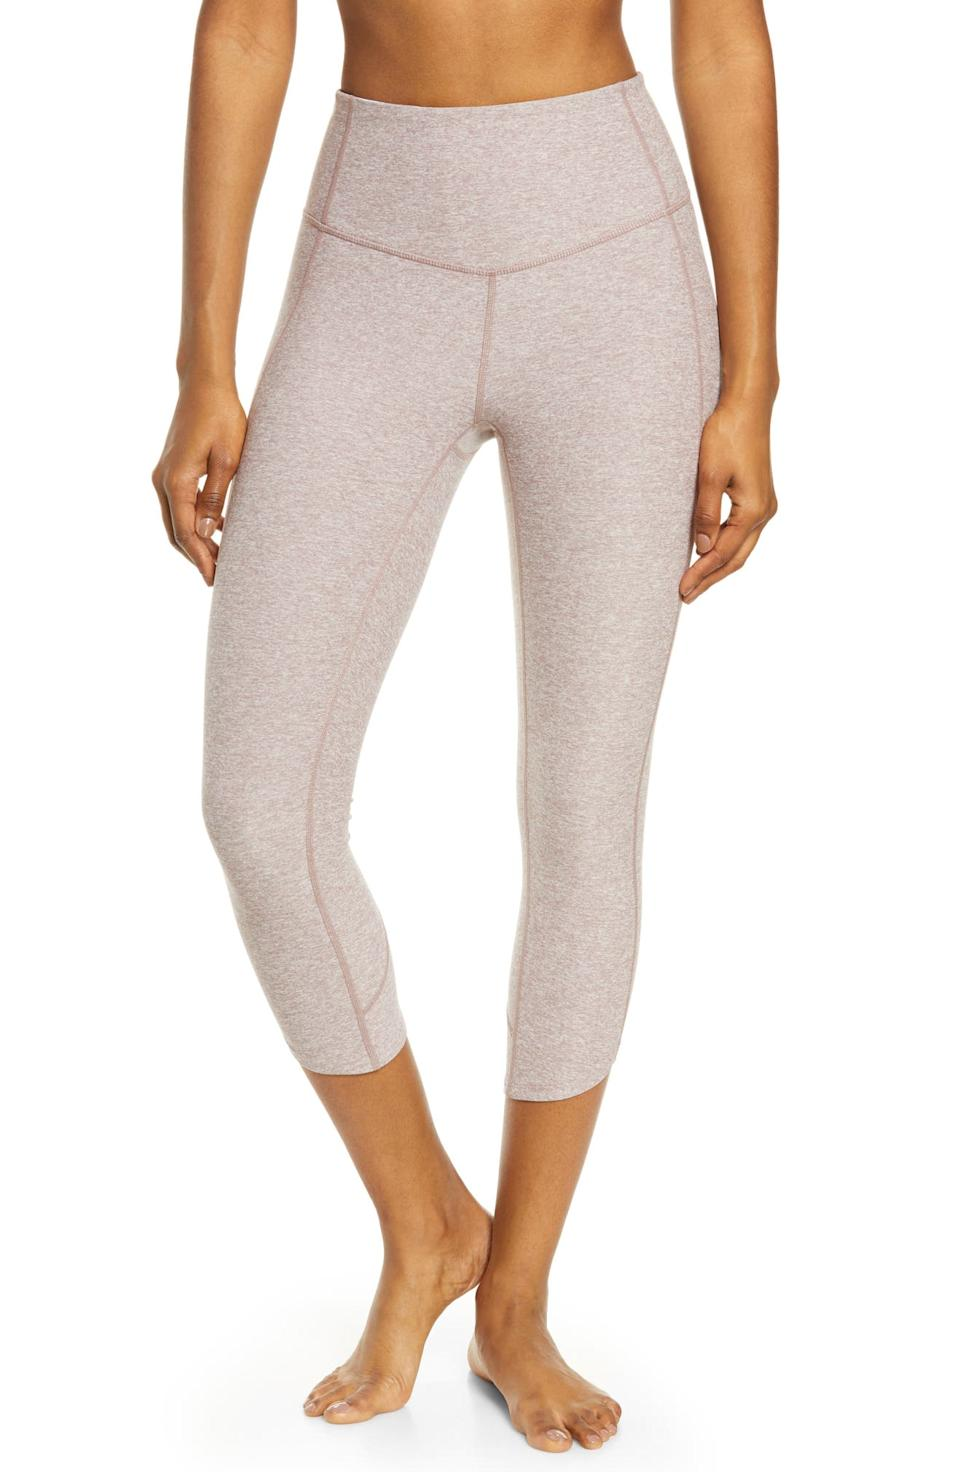 Restore Soft High Waist Tulip Crop Leggings. Image via Nordstrom.